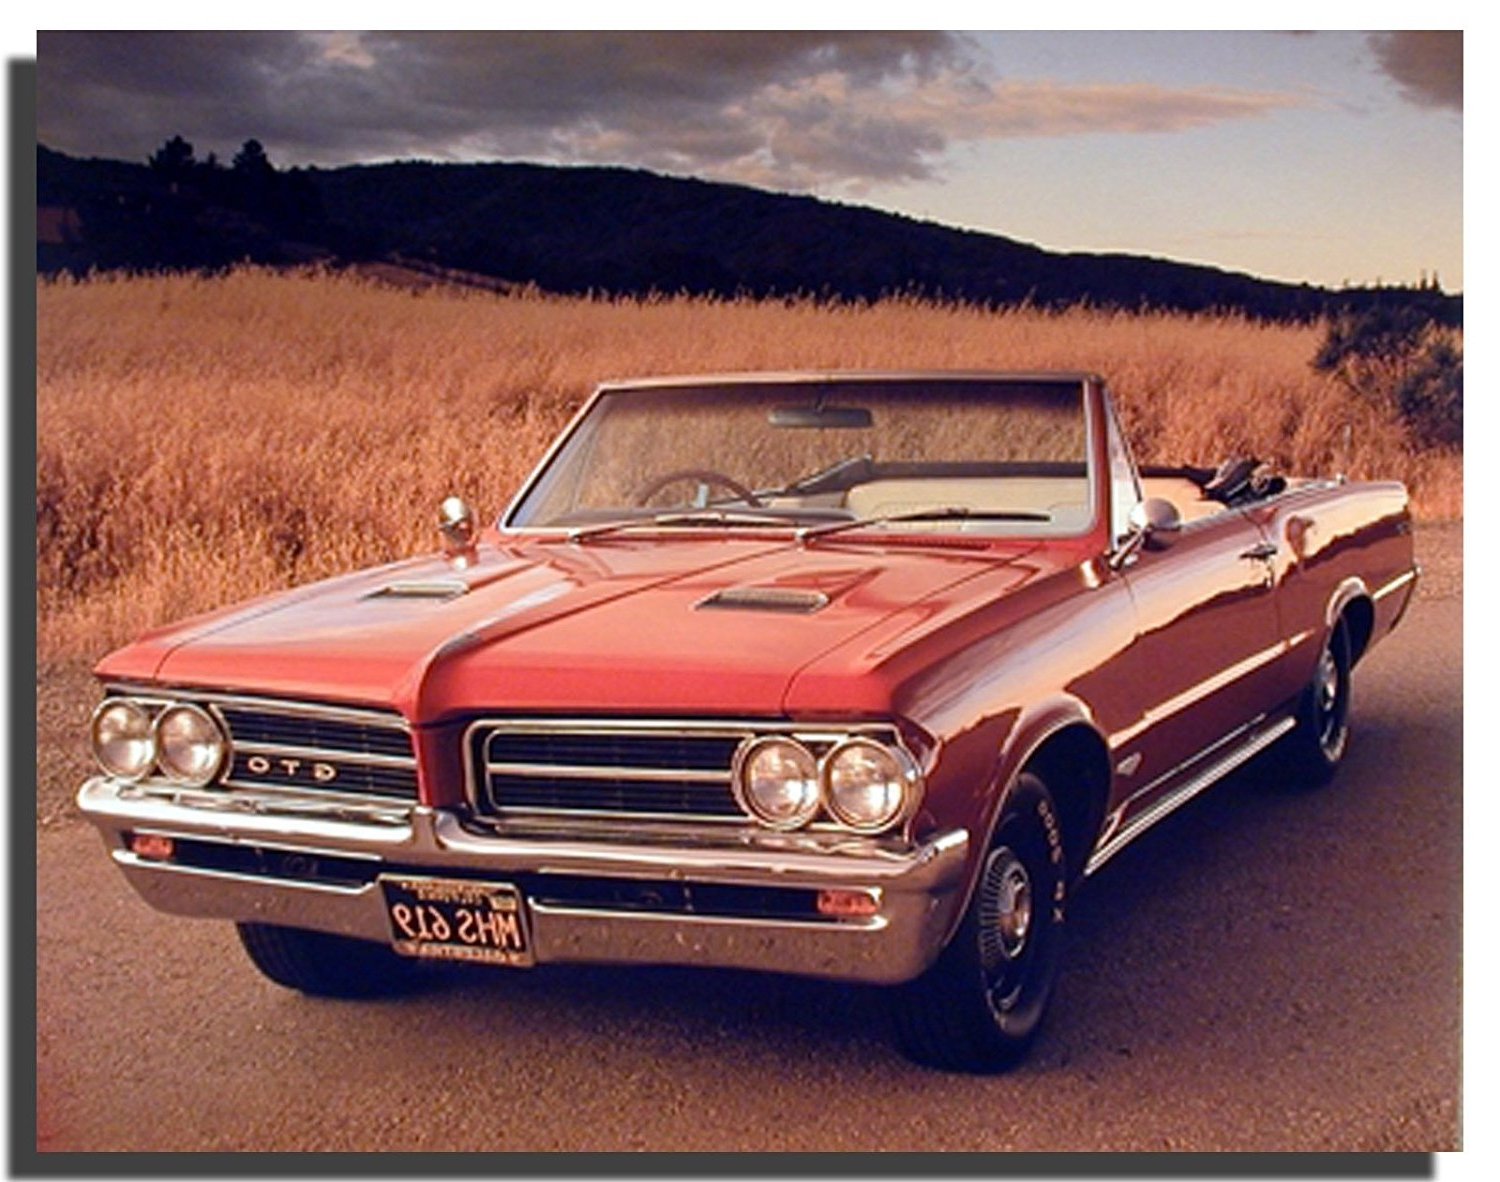 Amazon: 1964 Pontiac Gto Vintage Classic Car Wall Decor Art Intended For Recent Classic Car Wall Art (View 5 of 15)